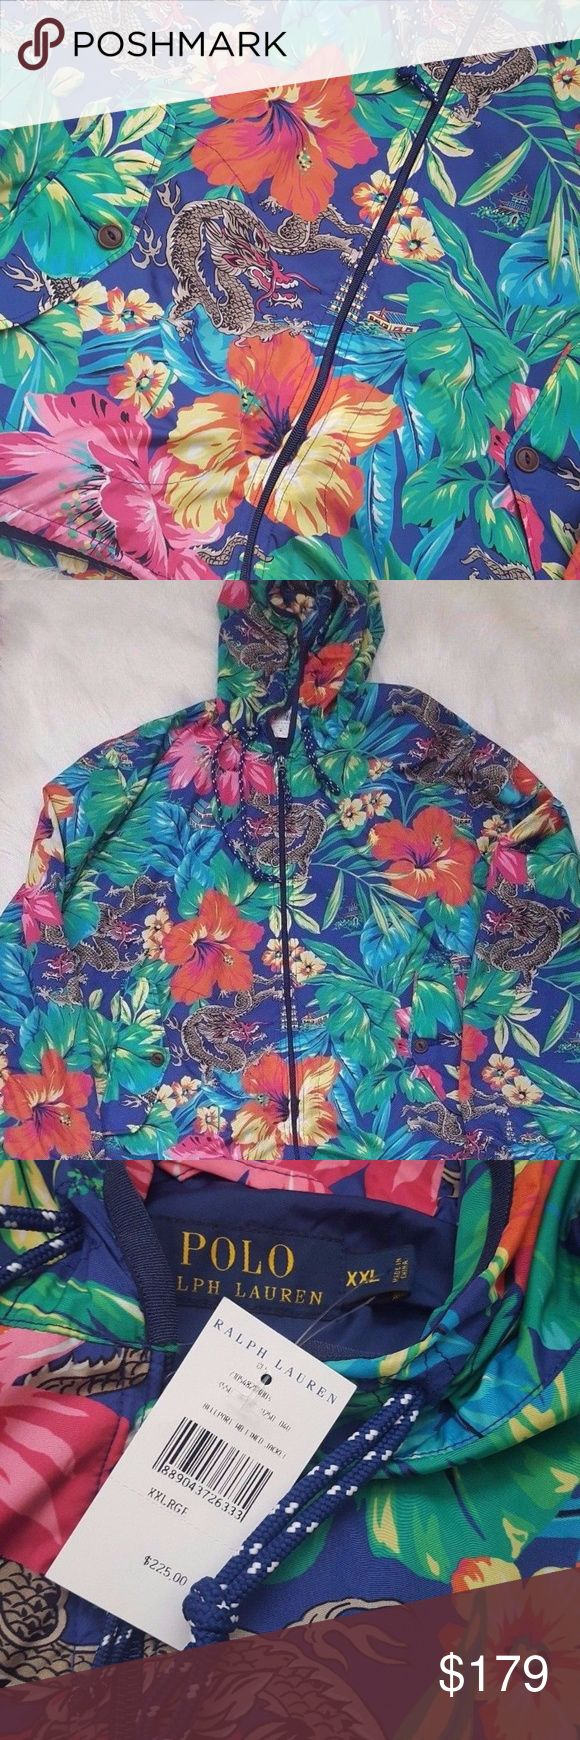 Men's Polo Ralph Lauren SwimWear Tropical Jacket RARE Men's Polo Ralph Lauren SwimWear Tropical Chinese Dragon Hibiscus Flower Jacket Hoodie   Size: XXL  100% Authentic   100% Nylon  Rare Tropical Chinese Dragon Design that is hard to Find   Please see Pictures for EXACT Item you will RECEIVE!  Thanks for Looking Polo by Ralph Lauren Jackets & Coats Windbreakers